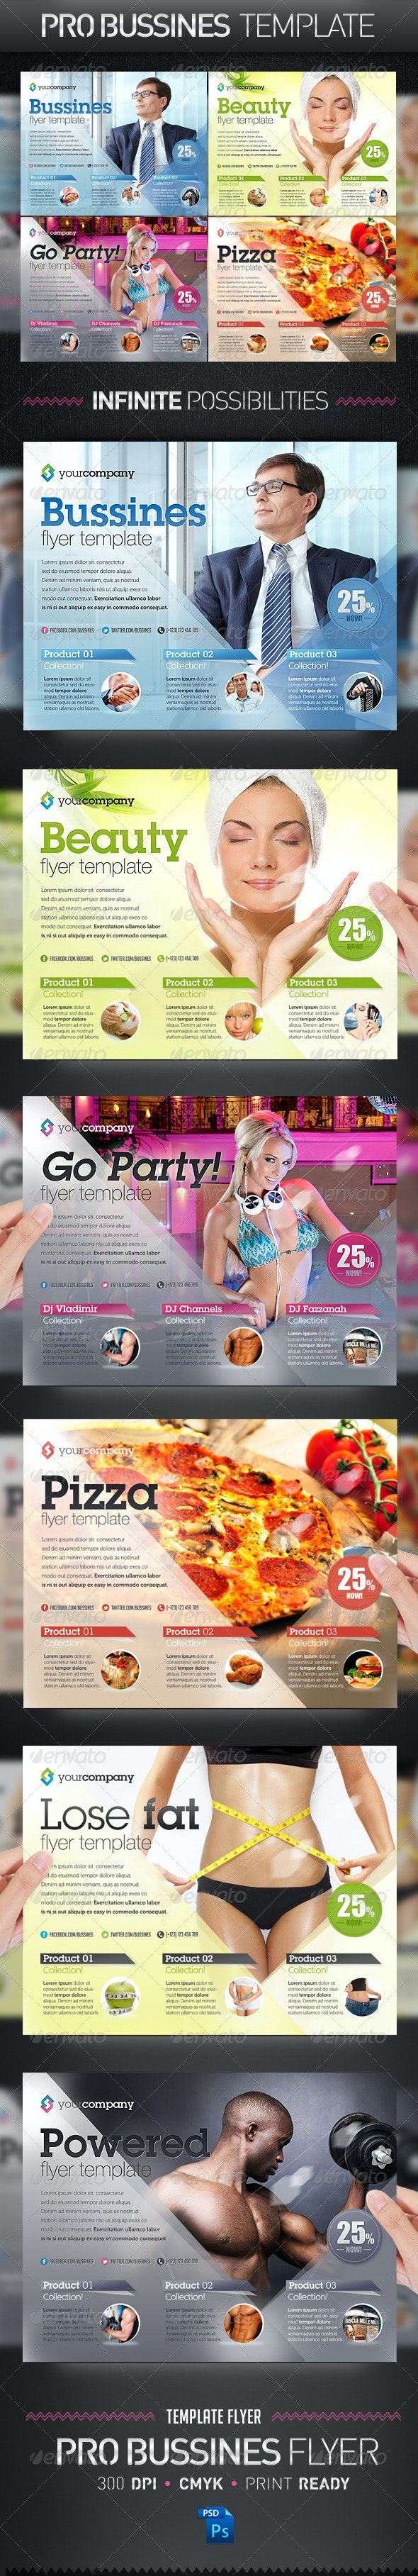 Business PRO Flyer Template - Corporate Flyers